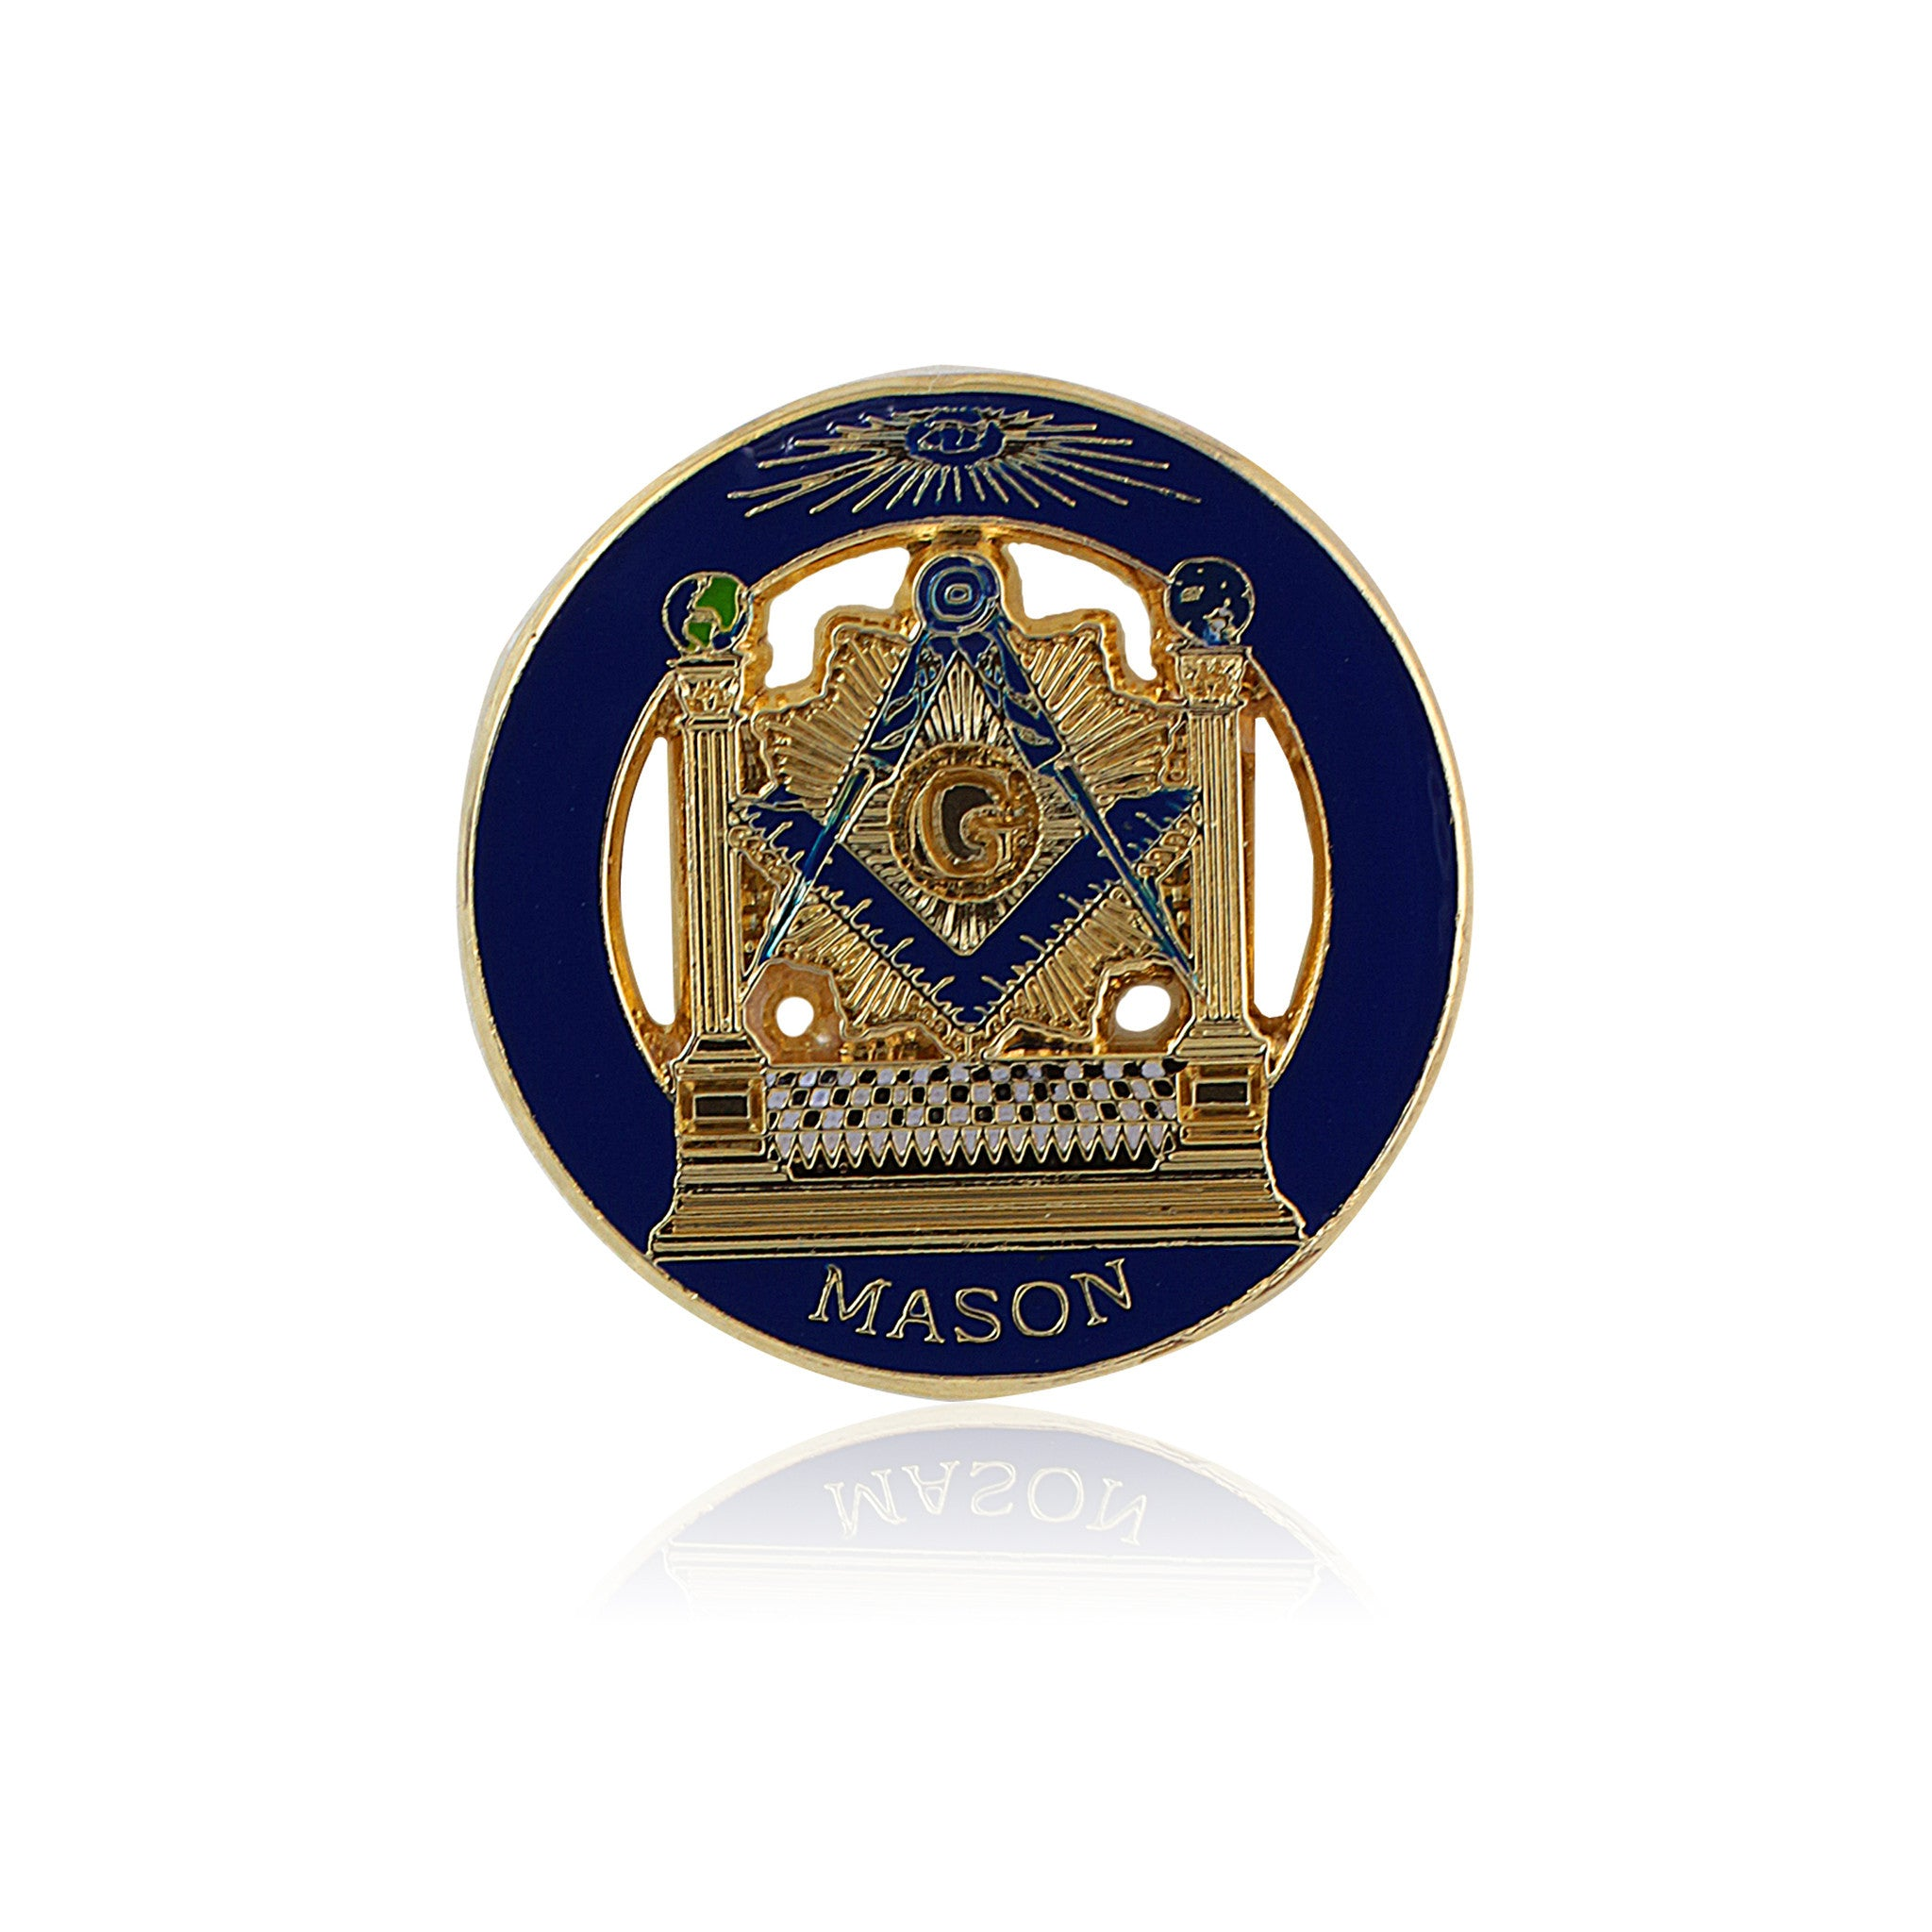 Boaz and Jachin Masonic Pillars and Mosaic Pavement Lapel Pin